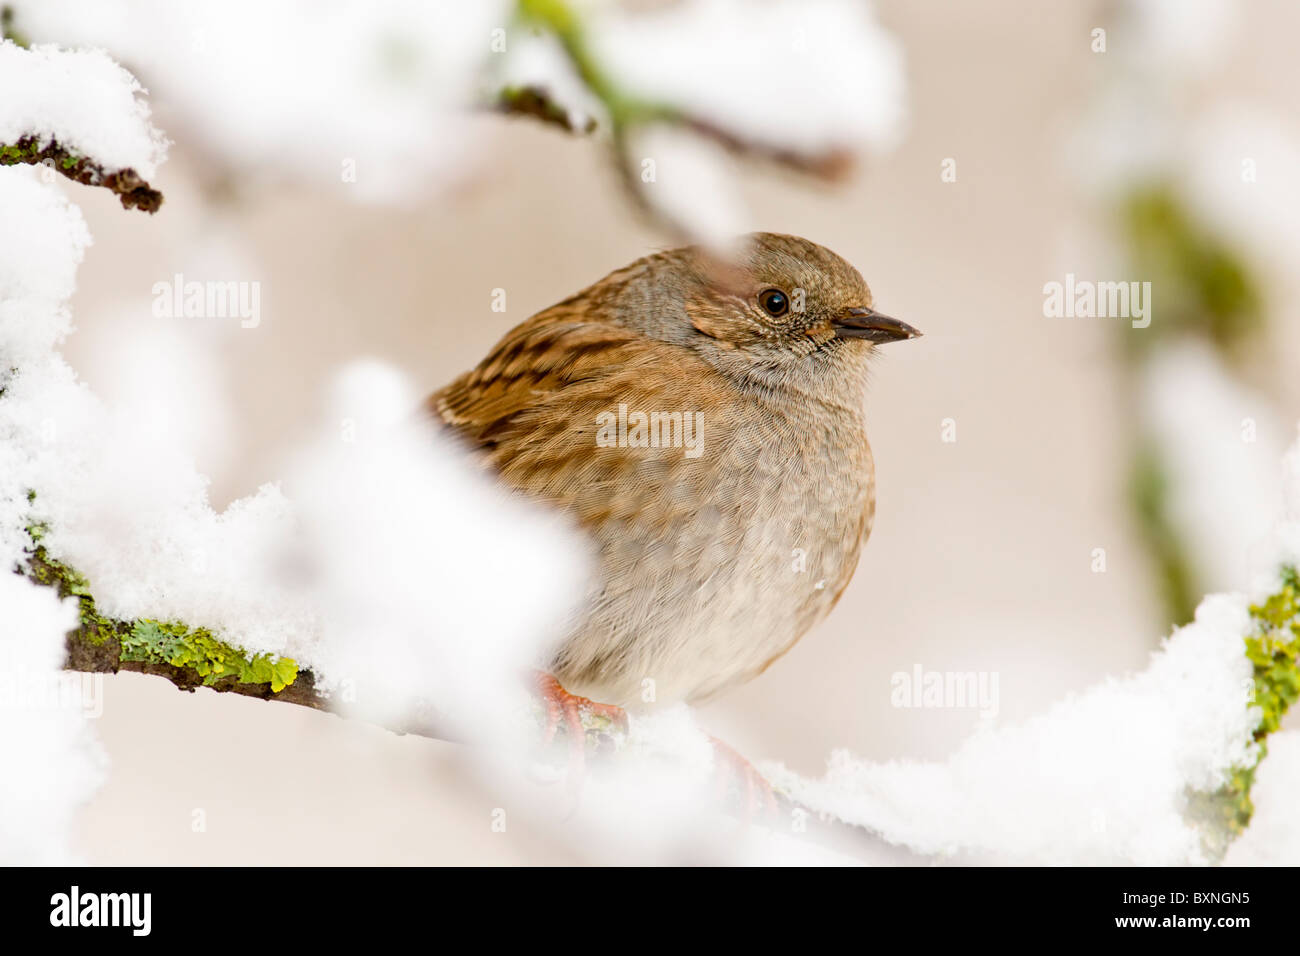 Dunnock perched in snow covered branches - Stock Image